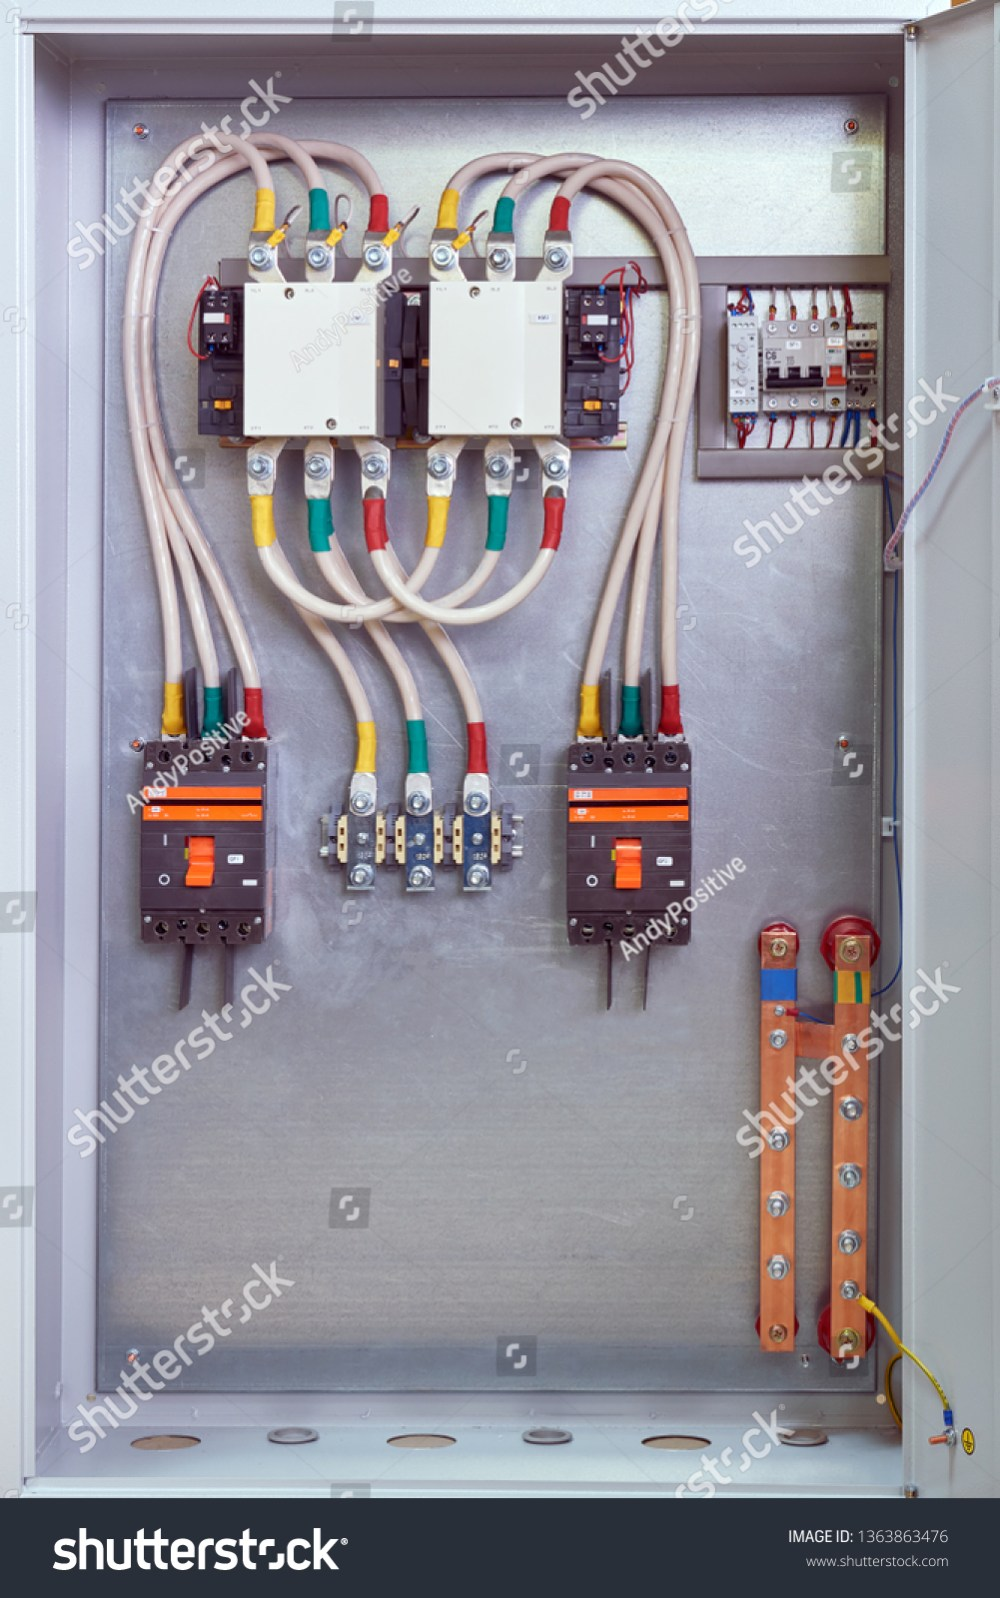 medium resolution of electrical cabinet with contactors circuit breakers voltage relays and through terminals electrical cables